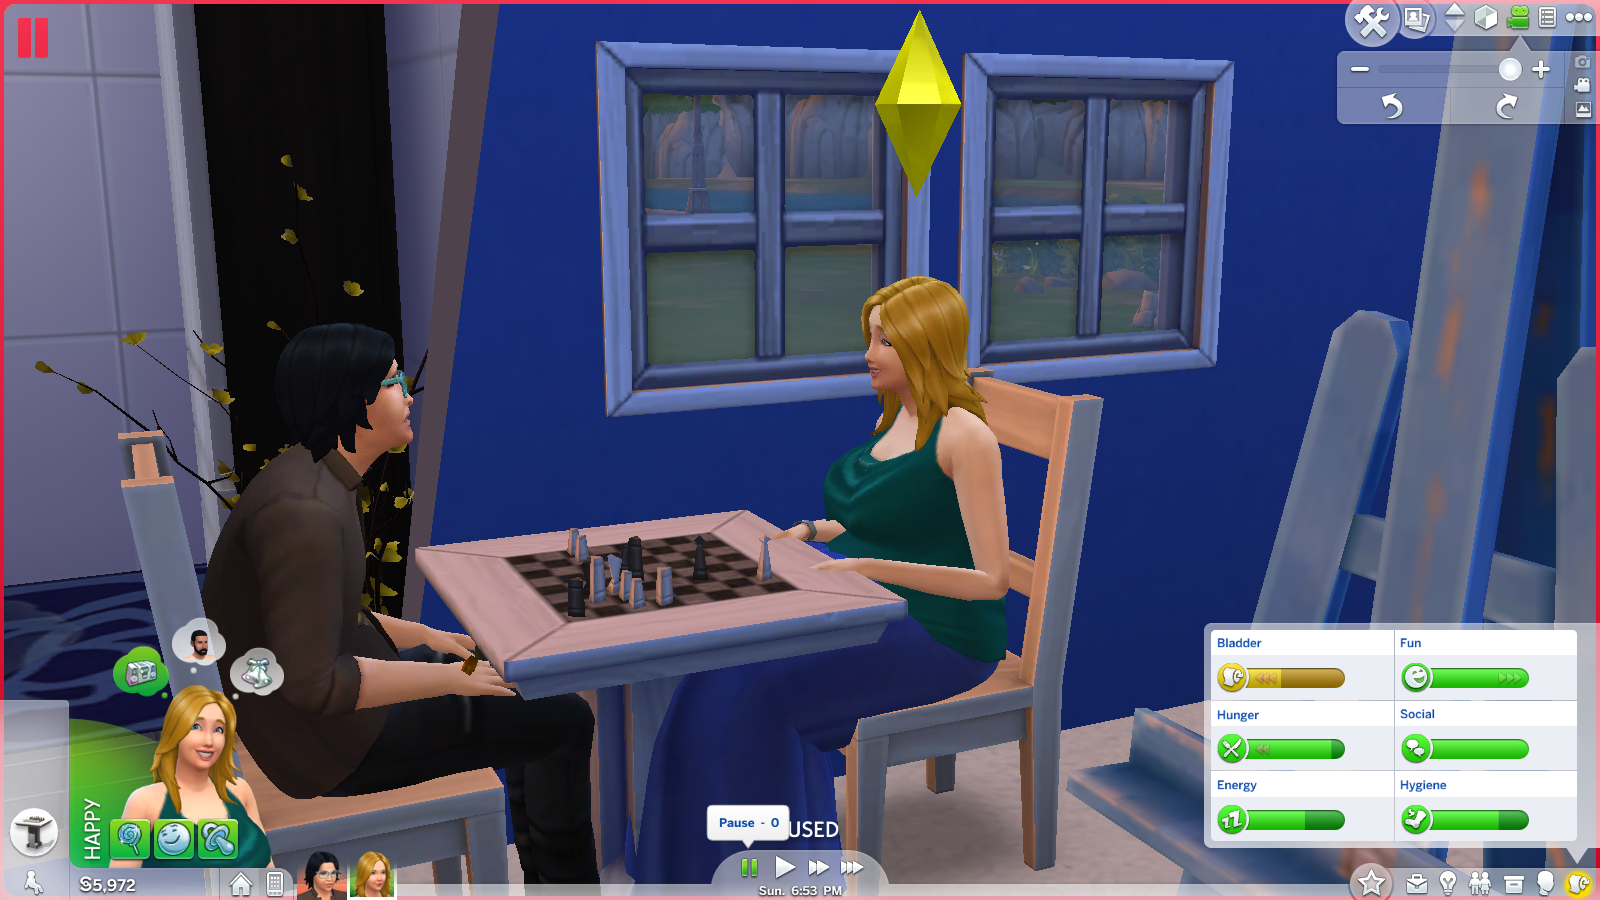 The Sims 4 couple playing chess and chatting multi tasking